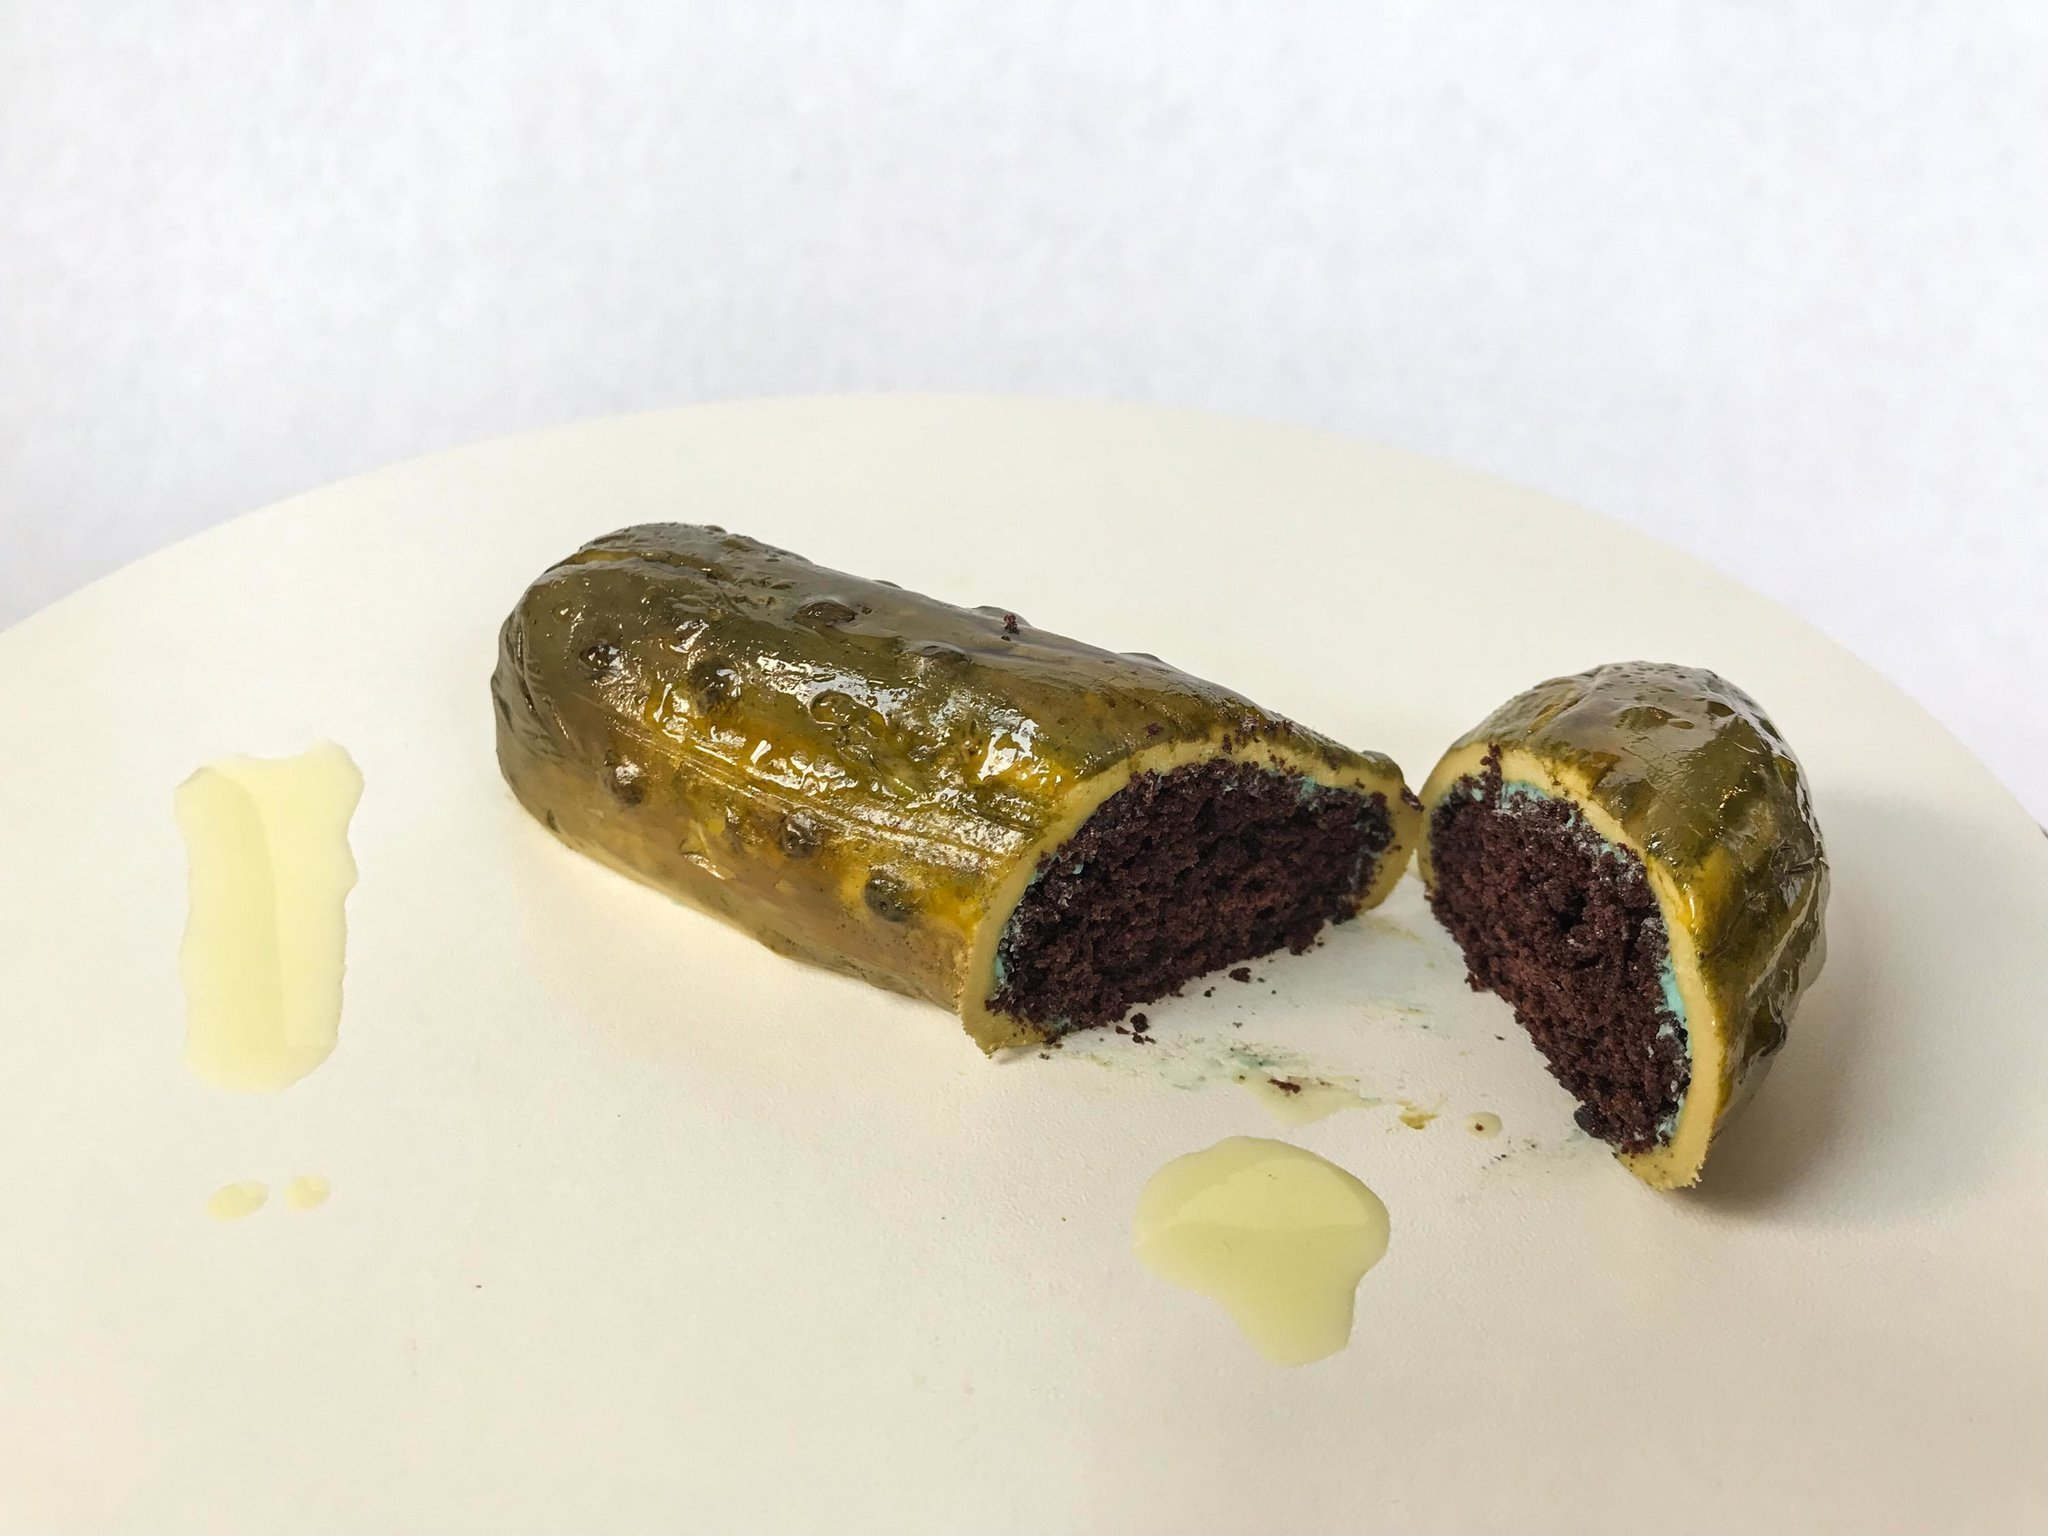 pickle shaped cake